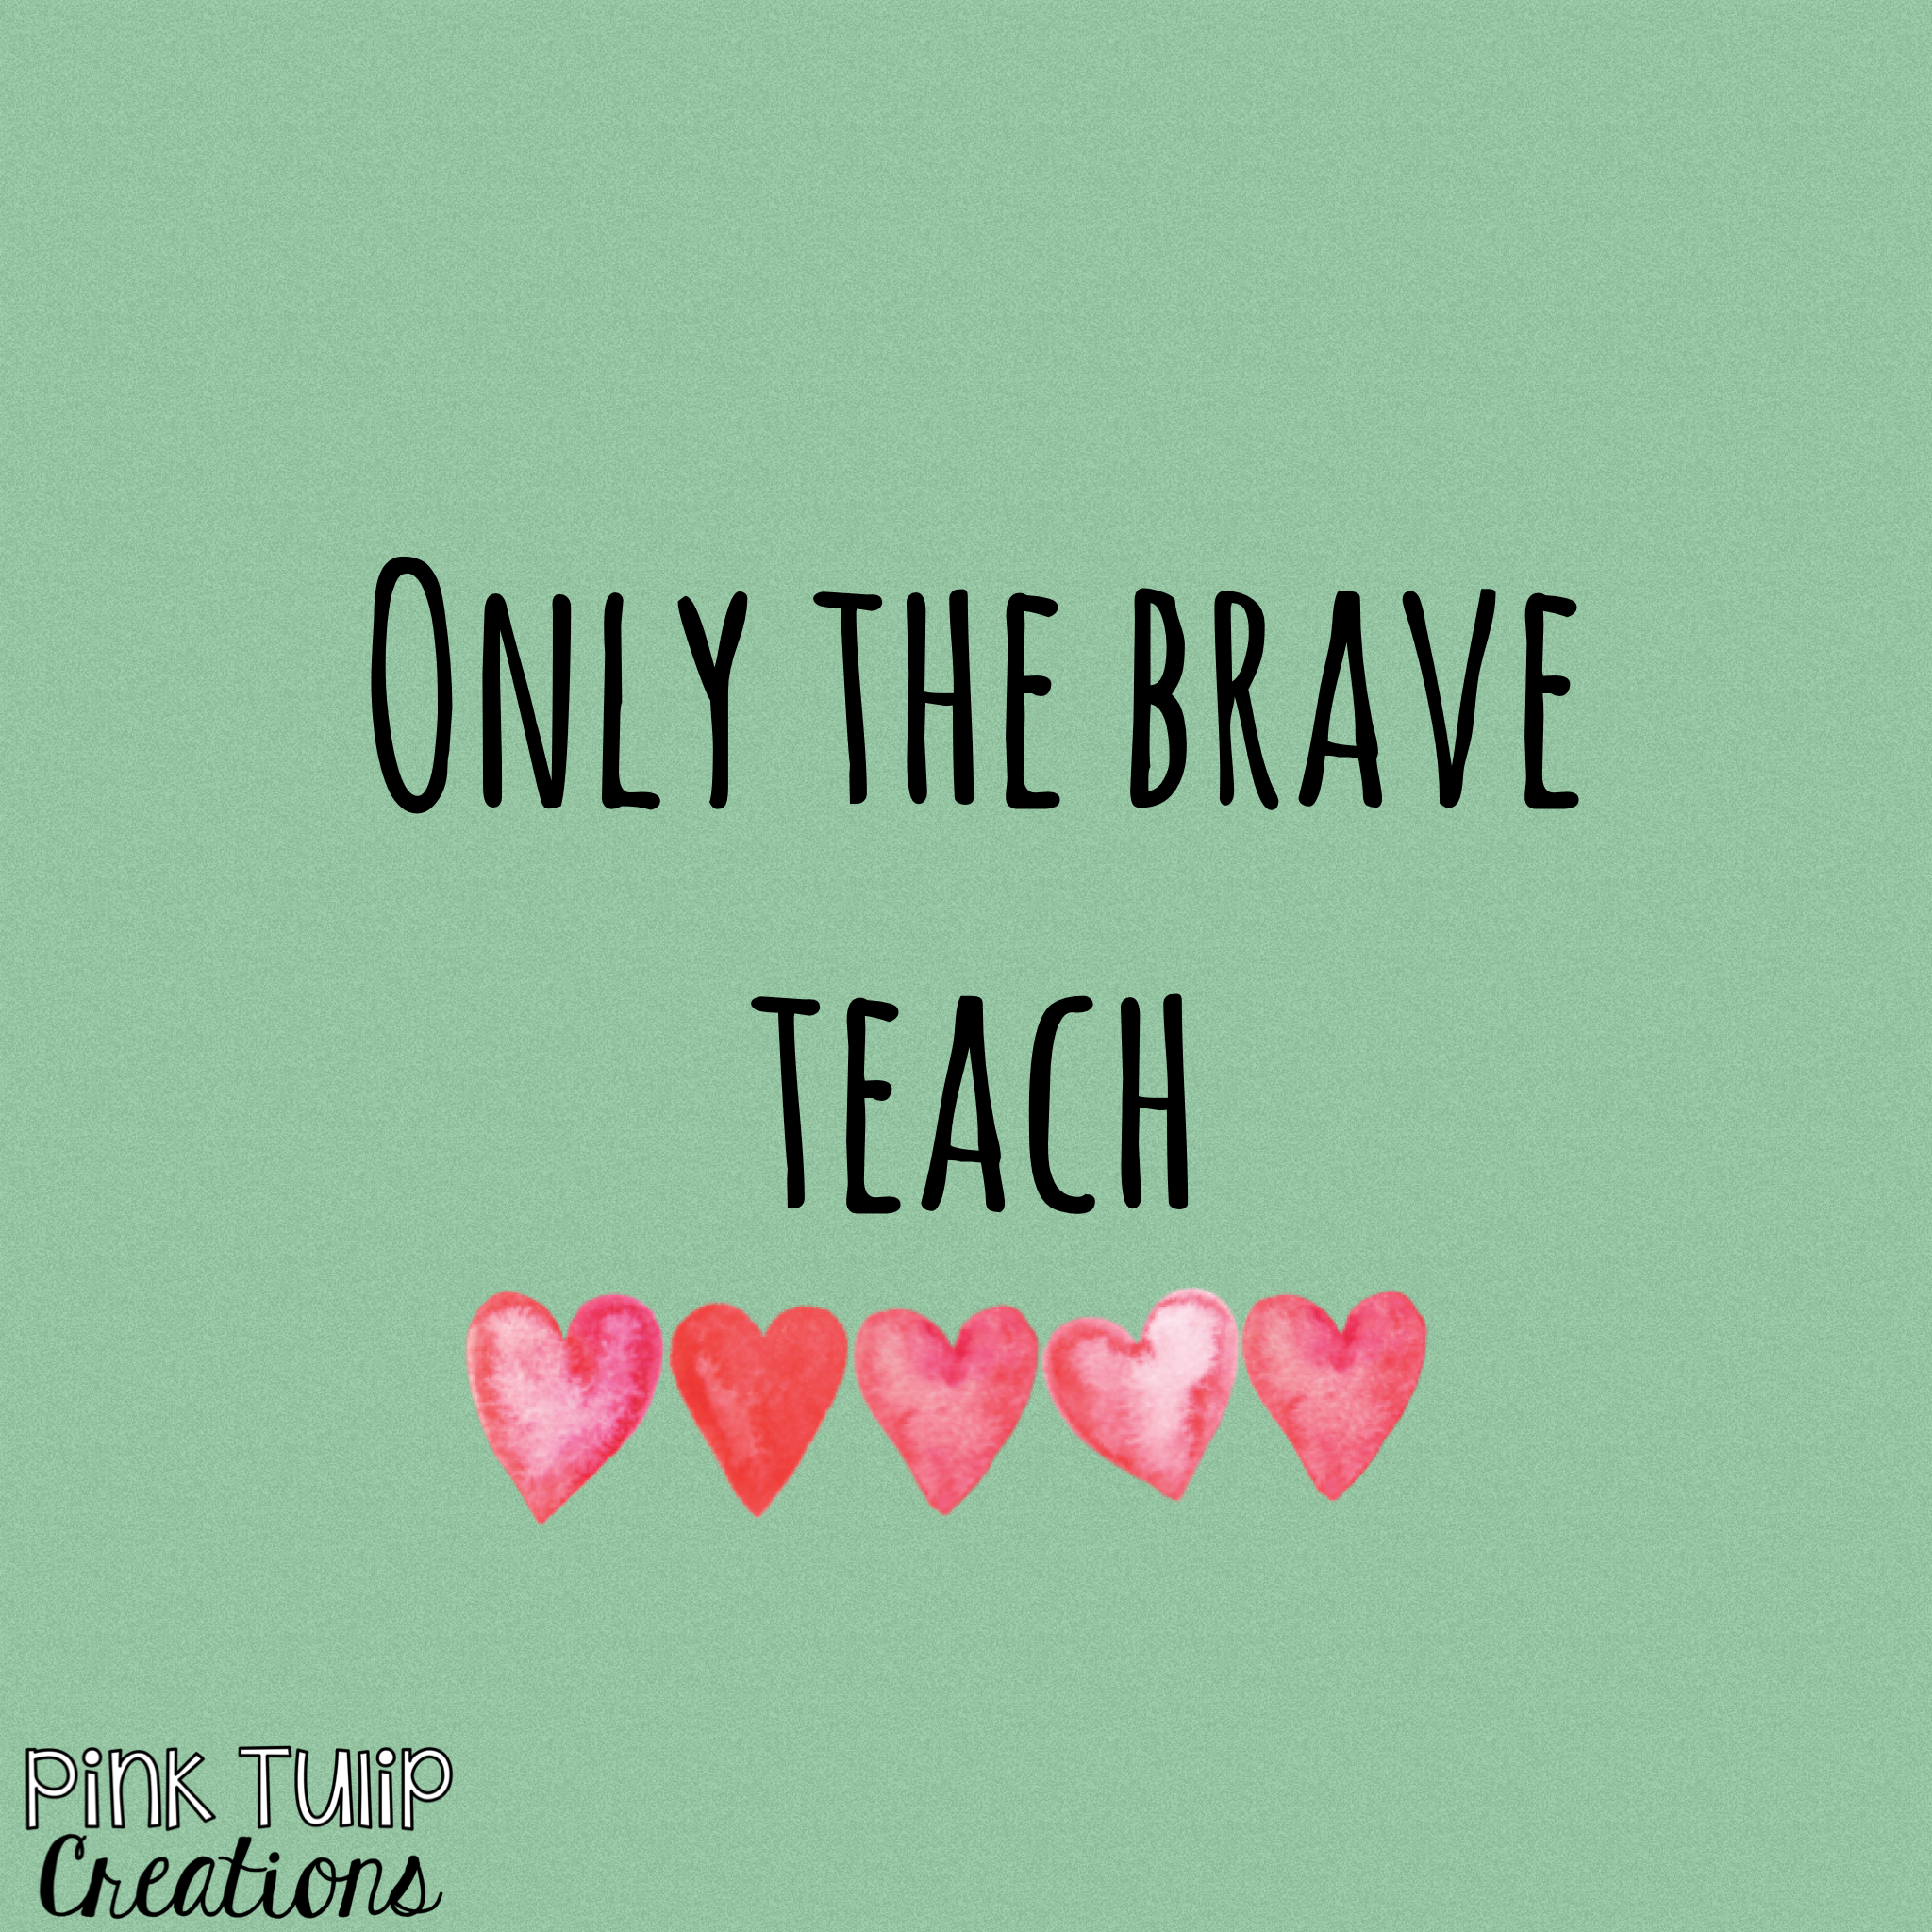 Teaching Quotes Beauteous Only The Brave Teachteaching Quotes Educational Education . Inspiration